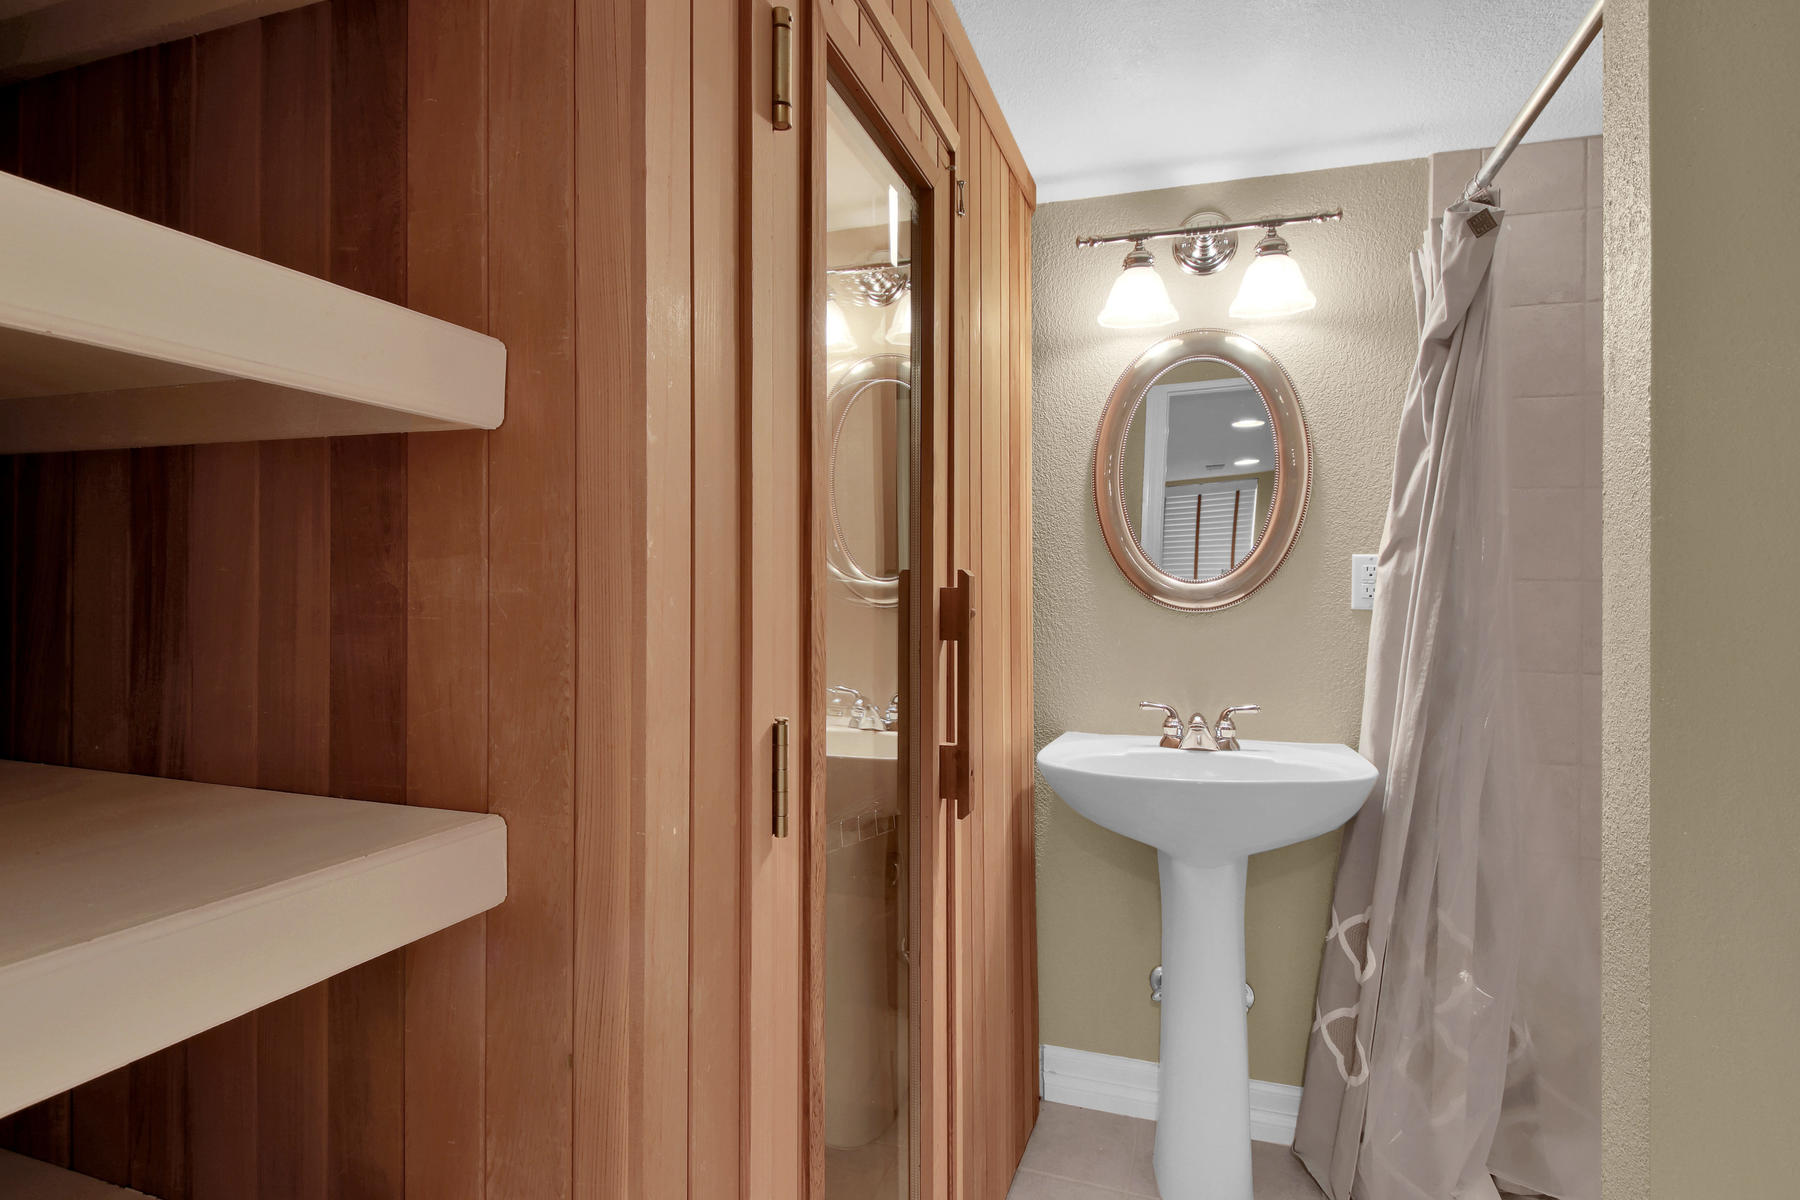 310 W Prestwick Way Castle-037-36-Bathroom-MLS_Size.jpg